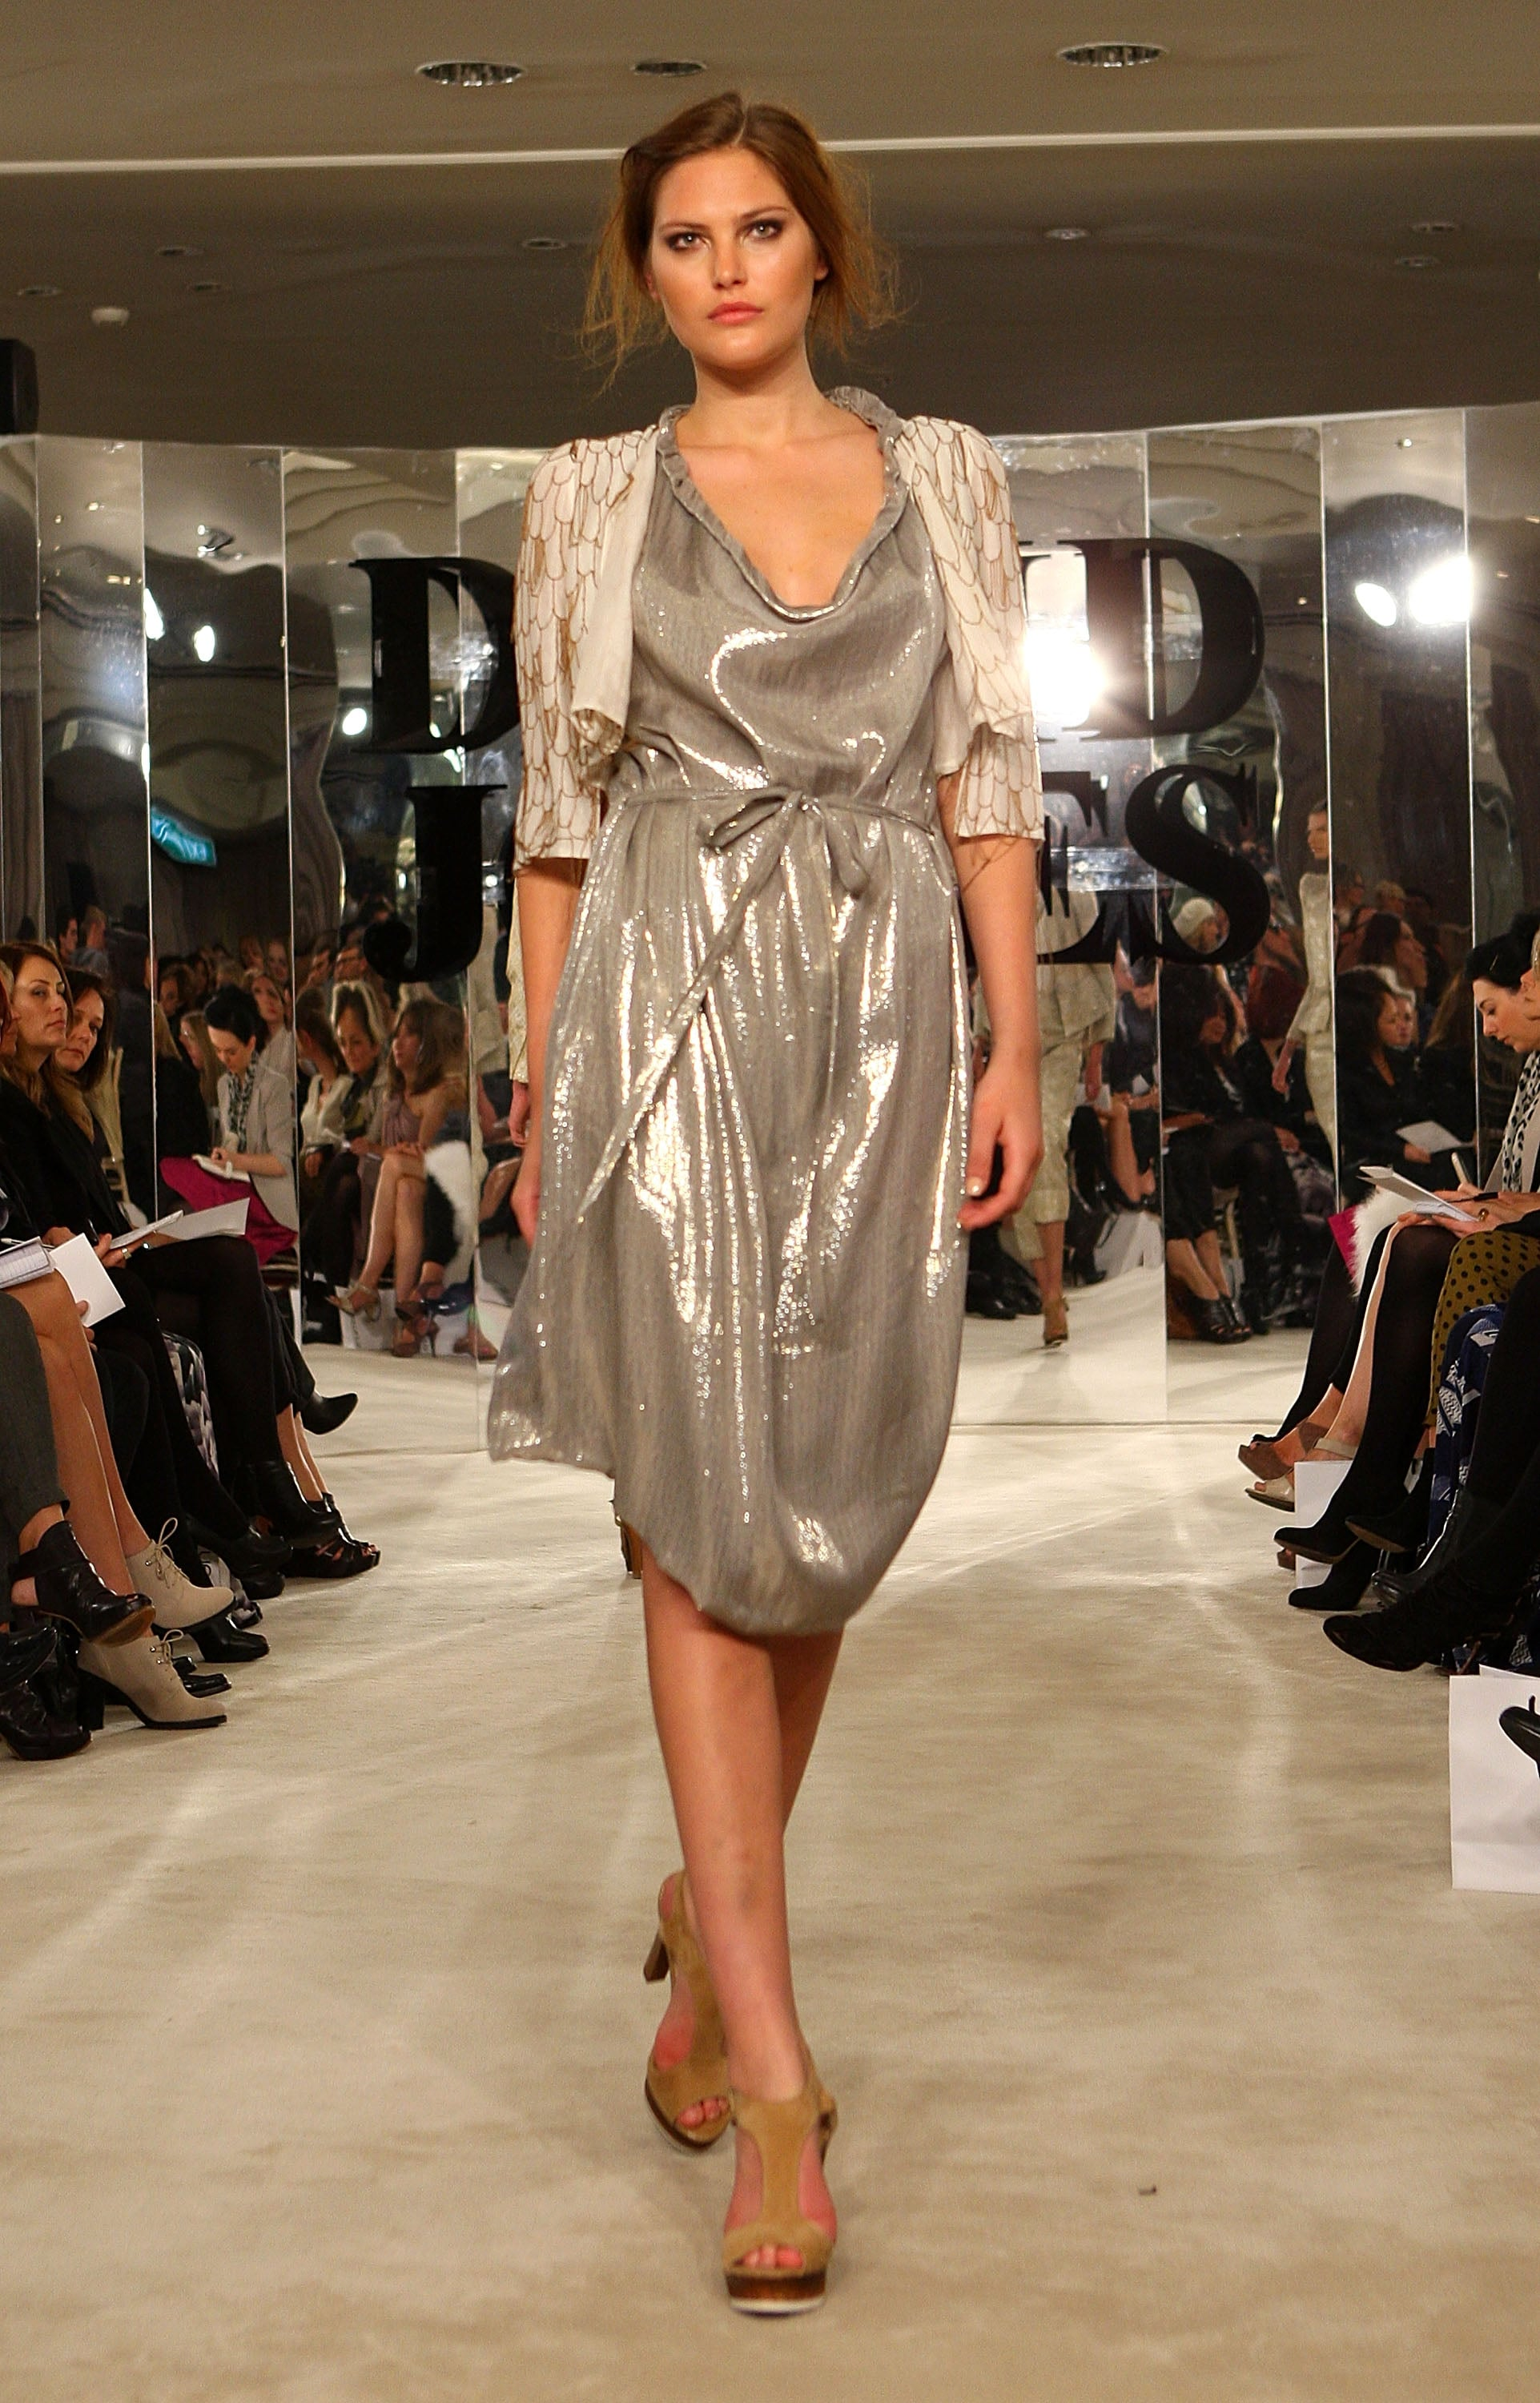 The hottest trends of the spring-summer 2010 season 09.02.2010 80